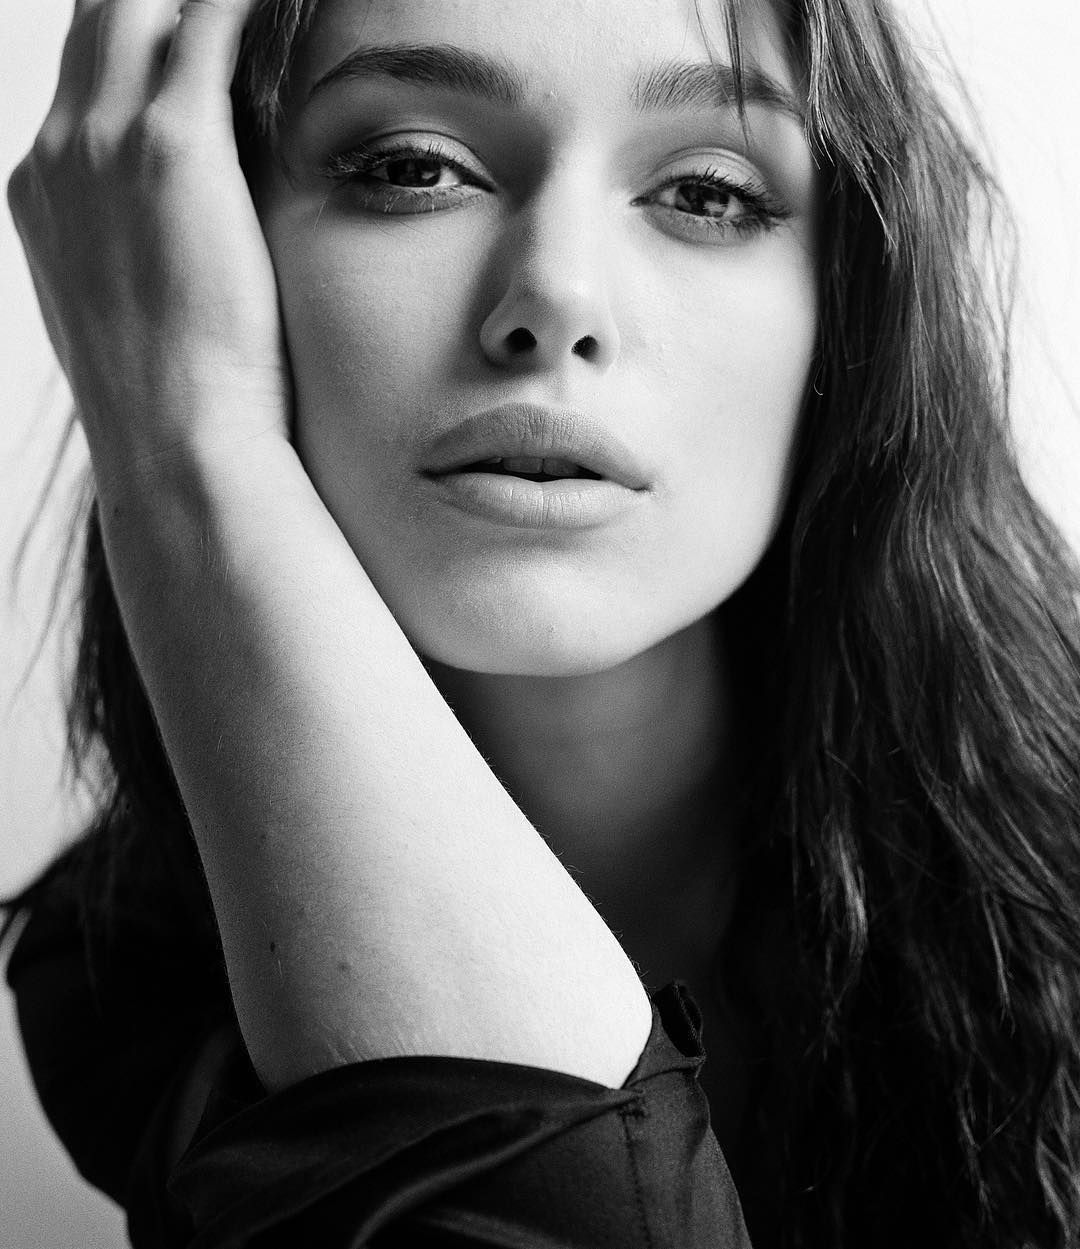 images Keira Knightley (born 1985)